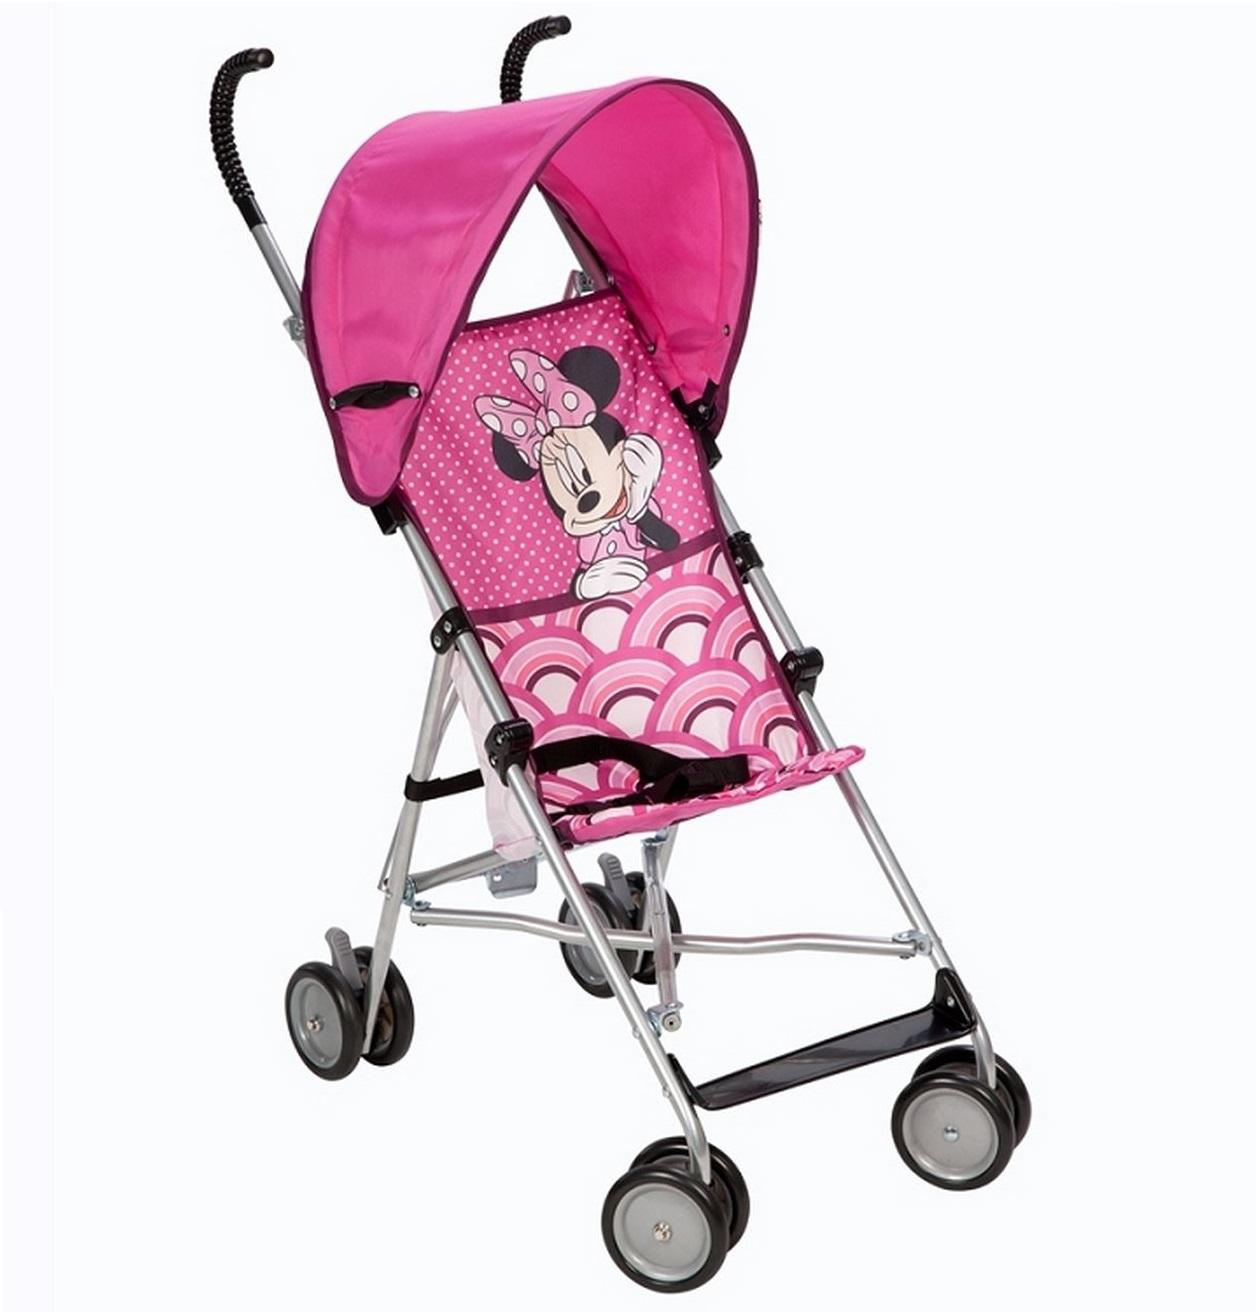 Disney Bye Bye Minnie Umbrella Stroller with Canopy (No Window) - Pack of 4